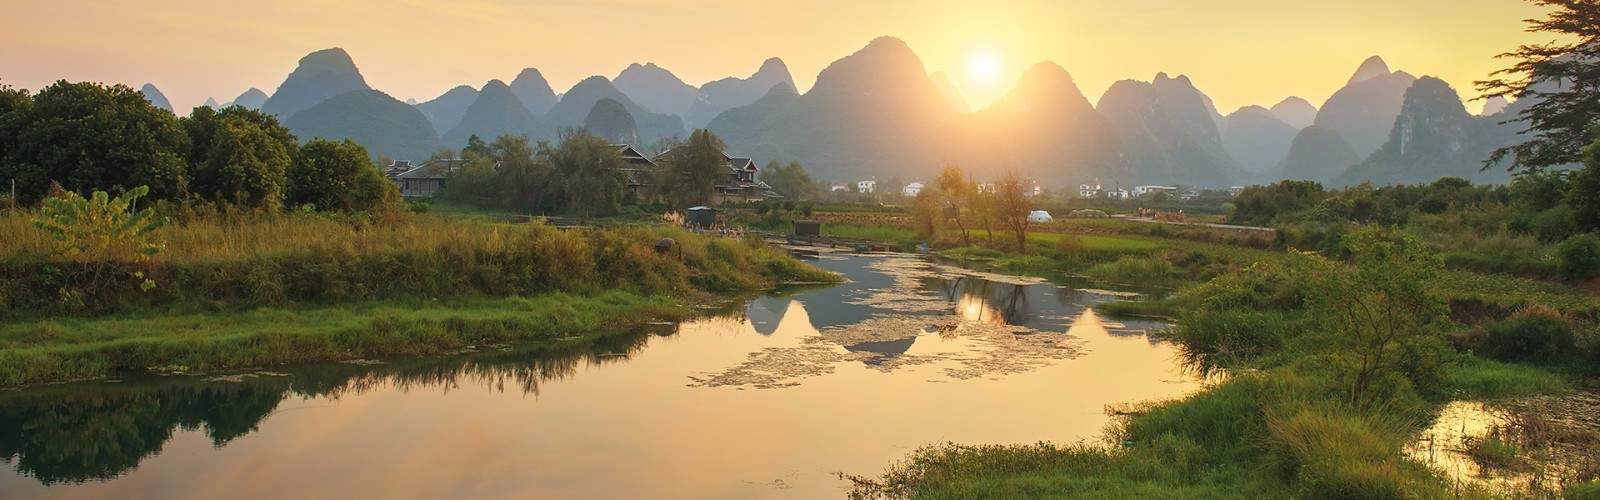 A China Adventure Tour | Wendy Wu Tours